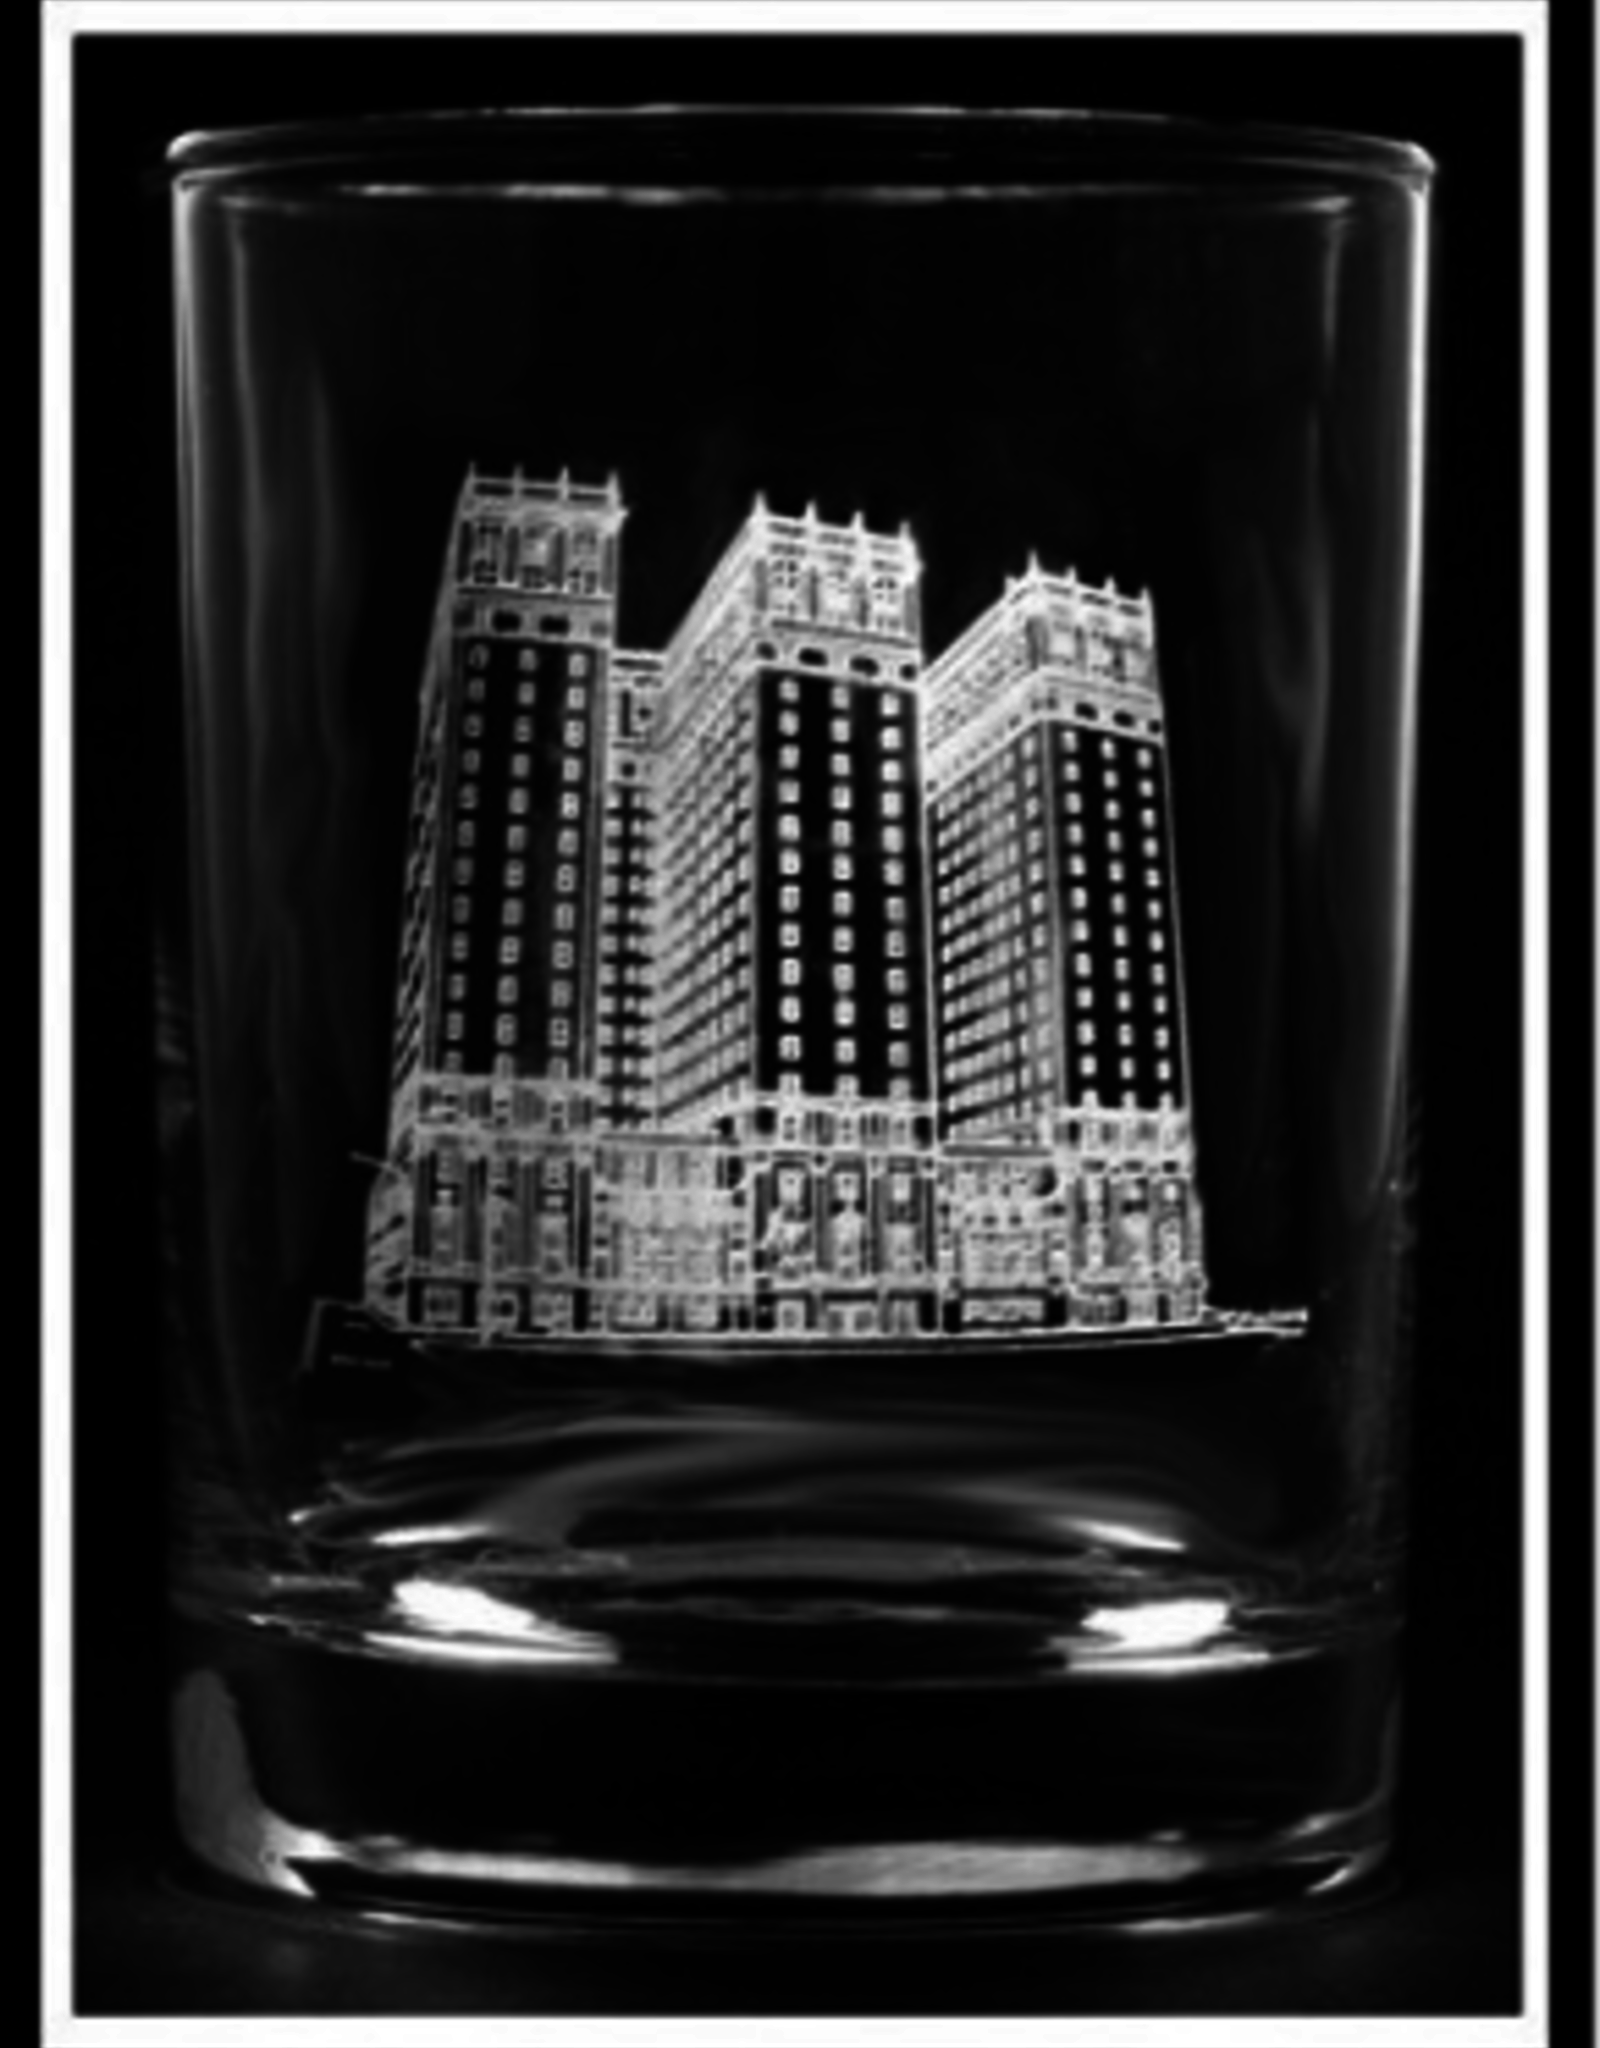 STATLER TOWERS ROCK GLASS